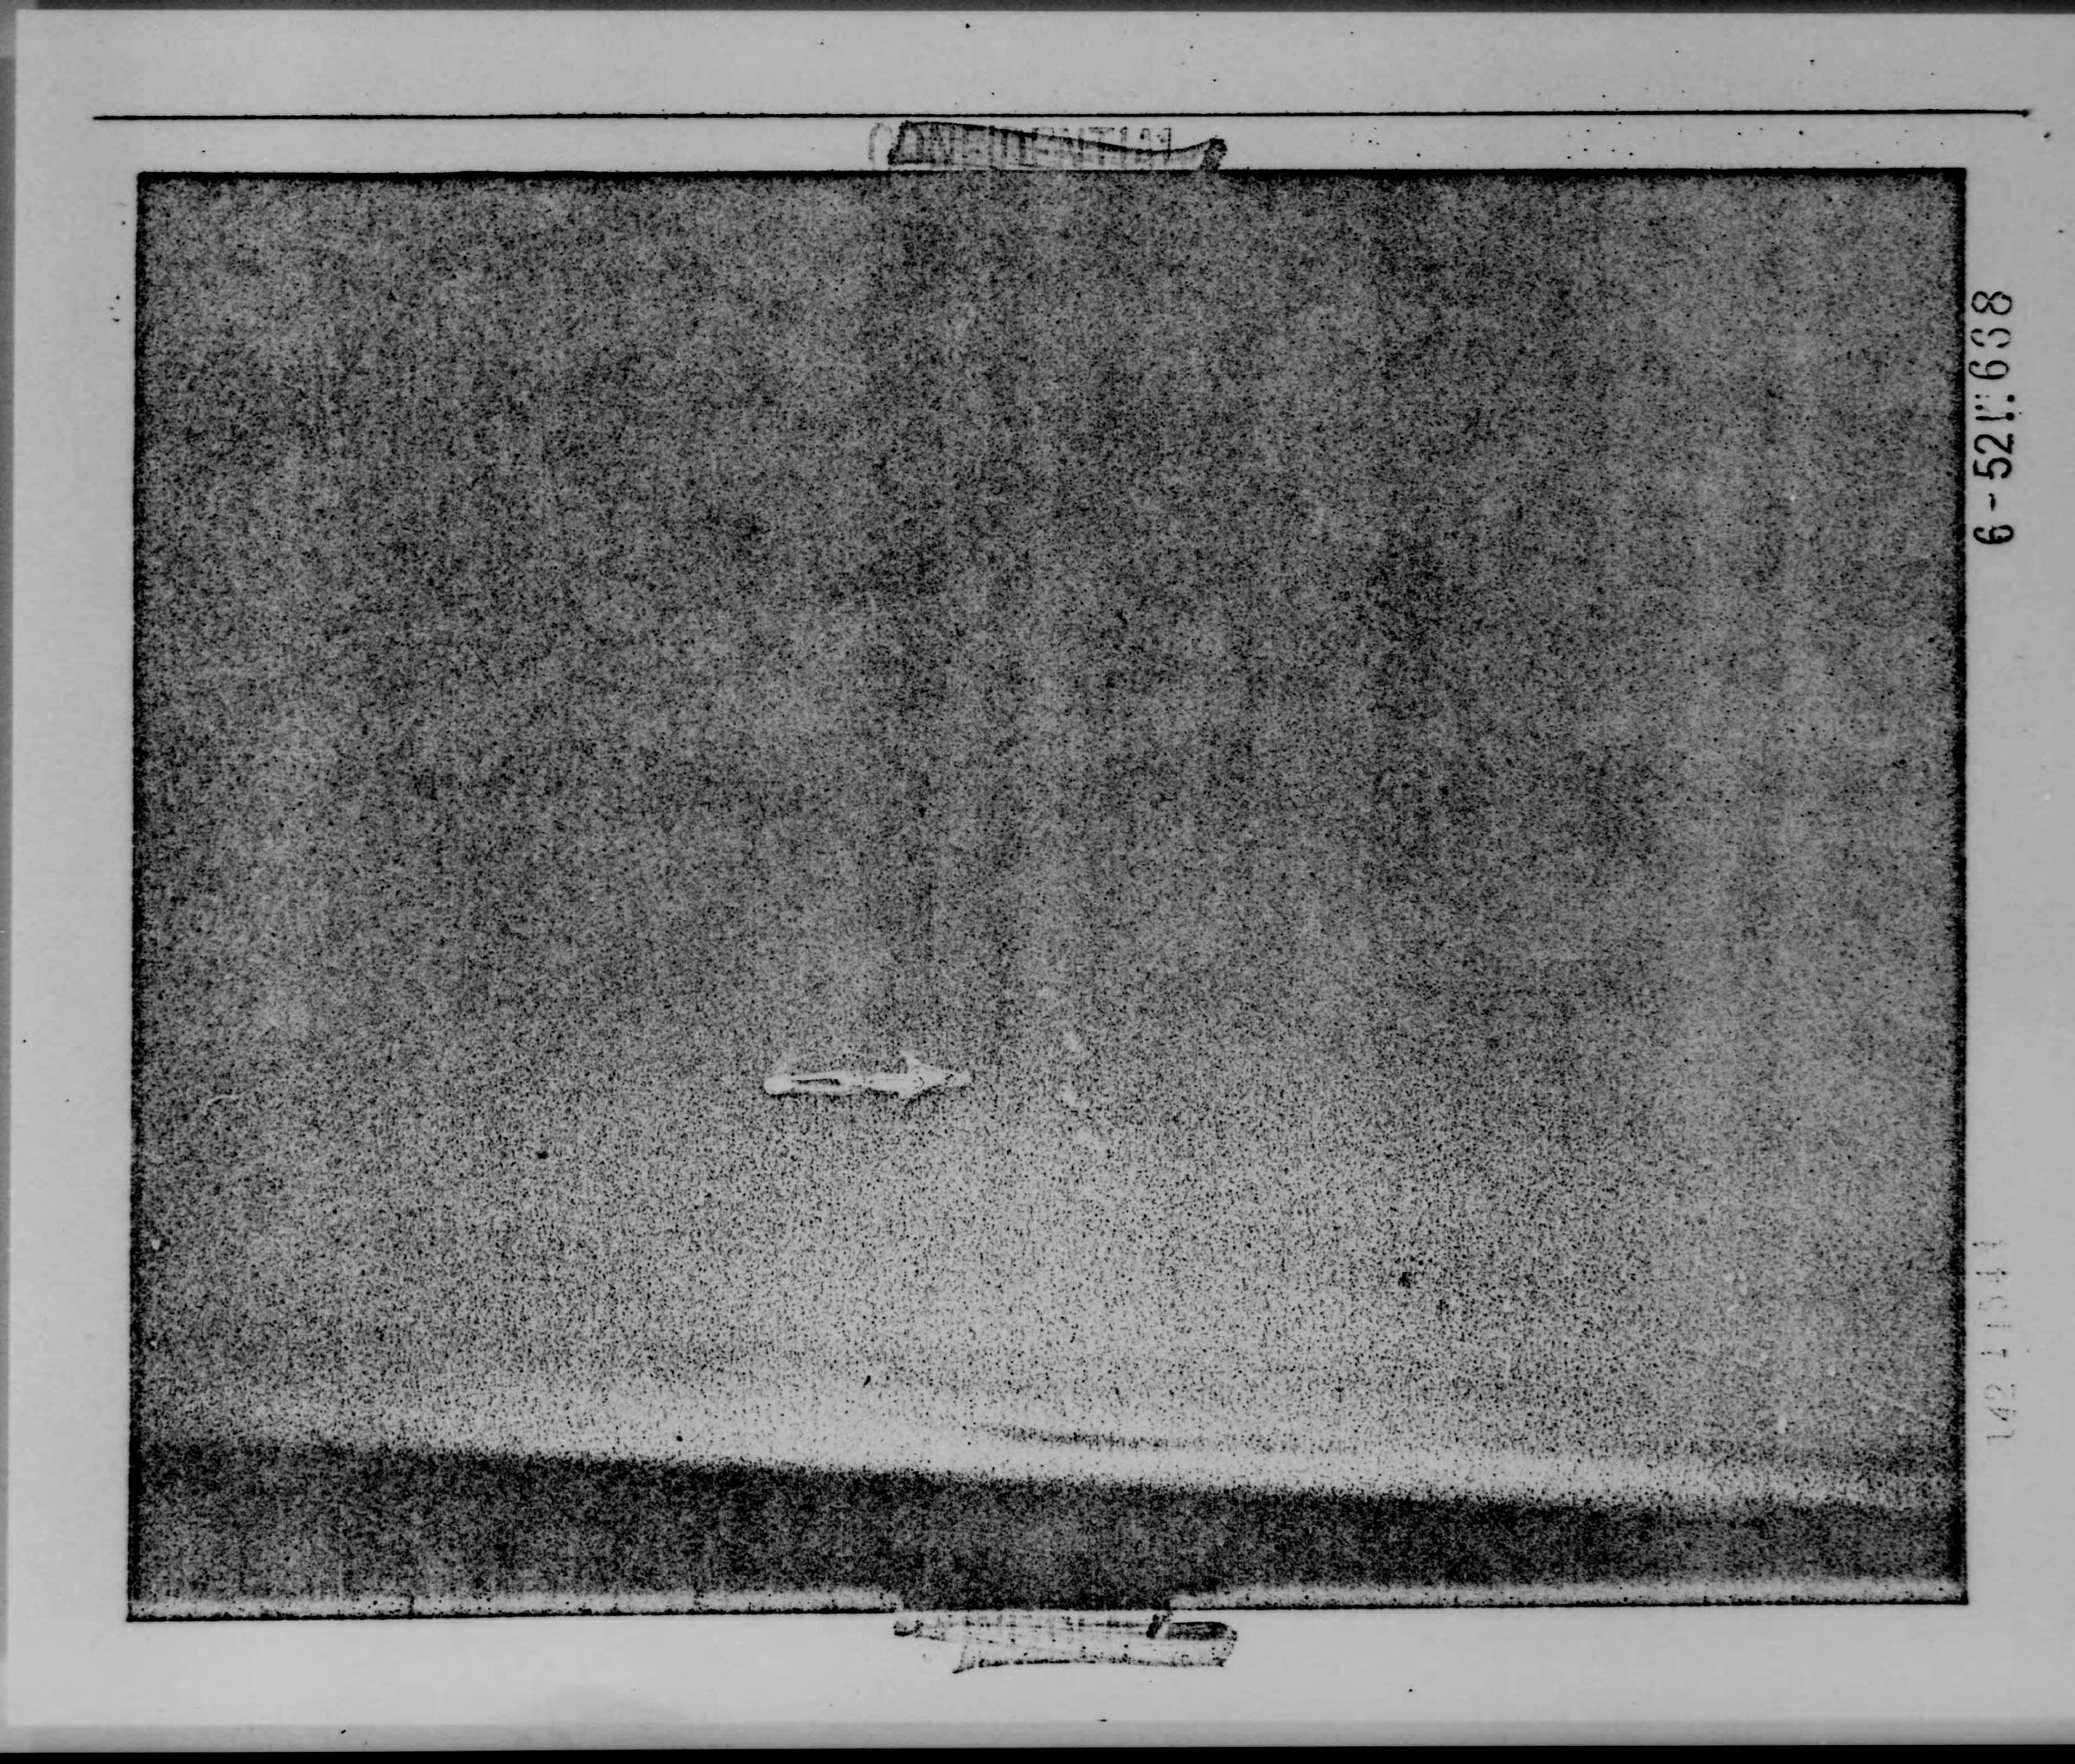 A terrible copy of the photograph contained in the National Archives. In the center, you can see a hand-drawn arrow pointing towards the 7 unidentified objects observed from the RB-36 crew. (National Archives)